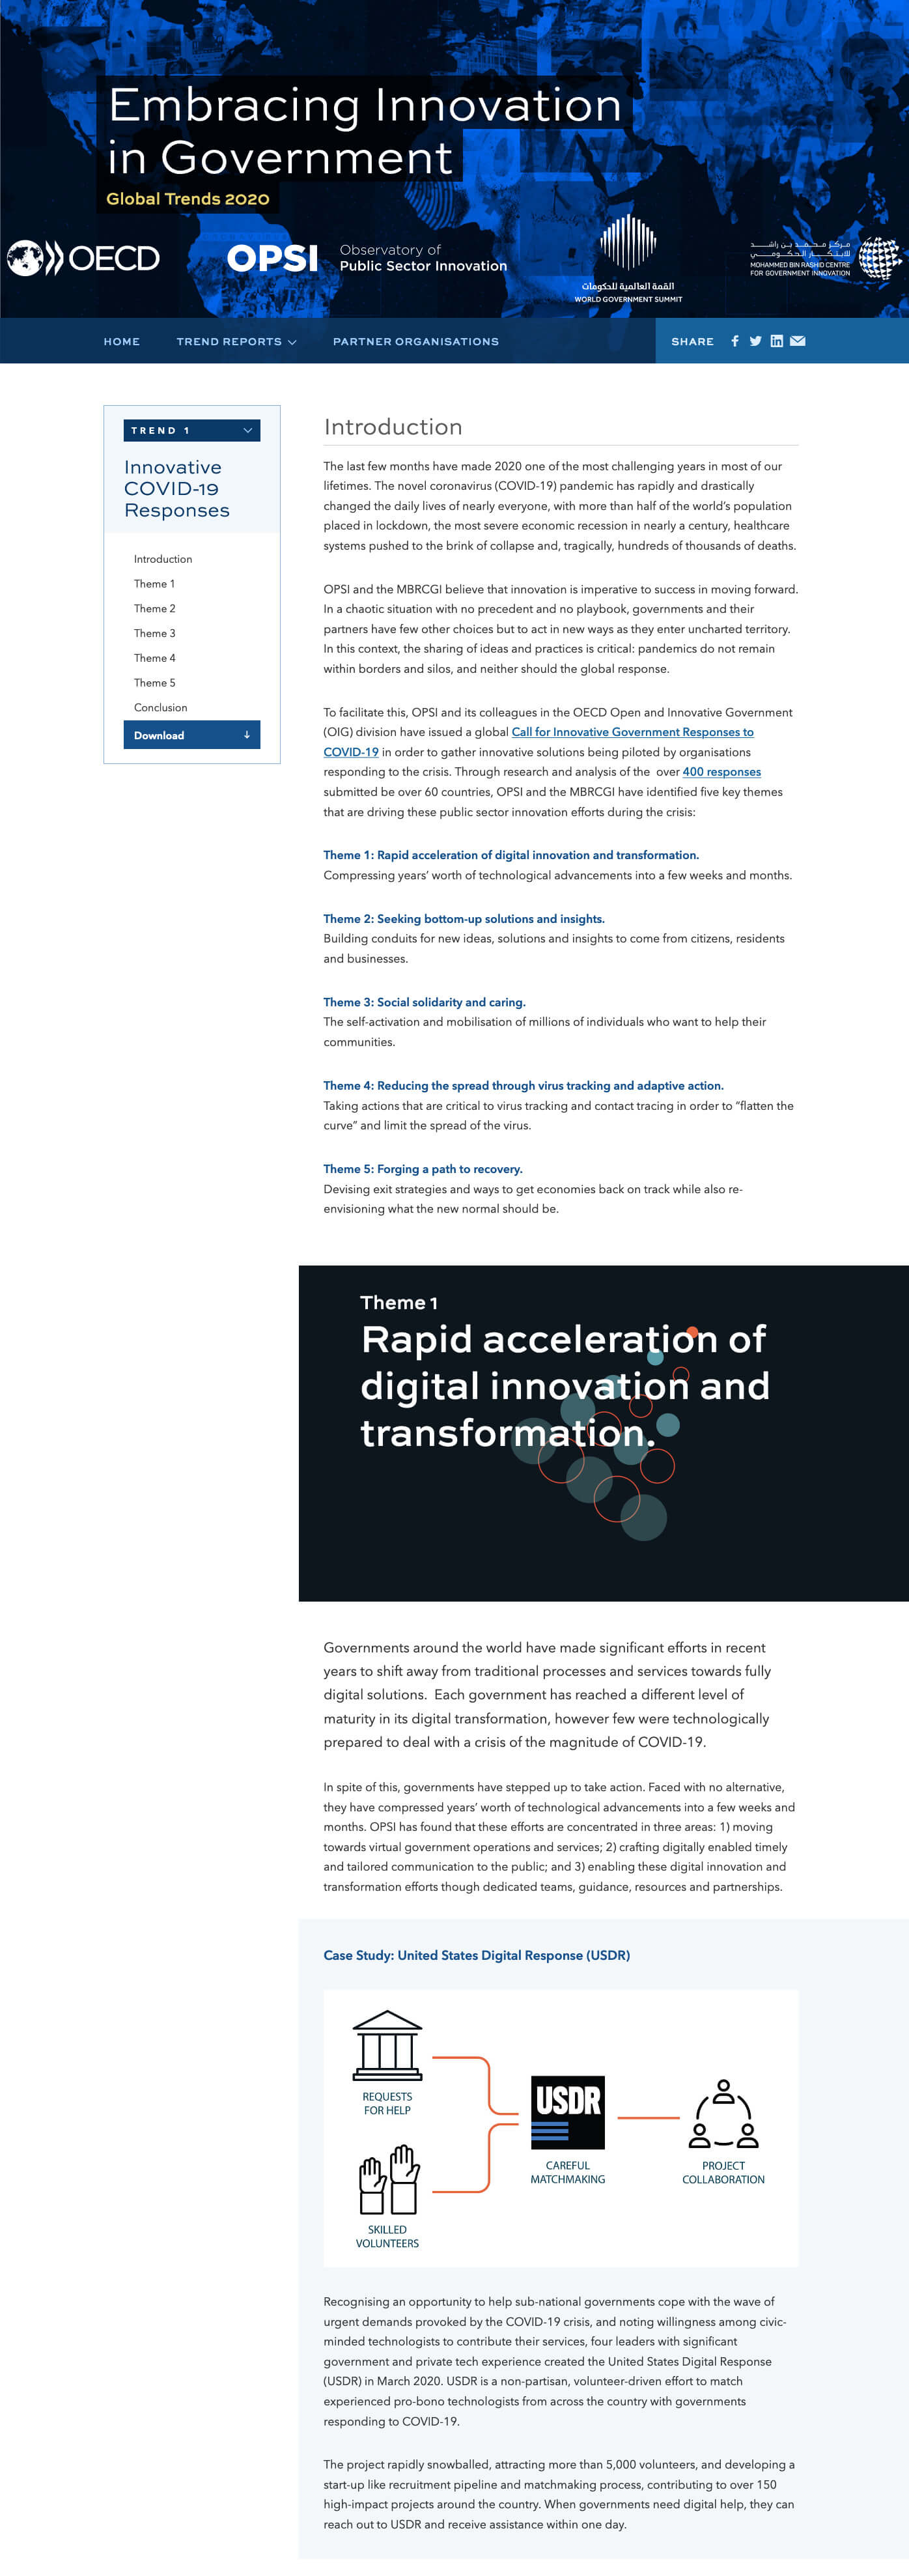 Embracing Innovation in Government: Global Trends 2020